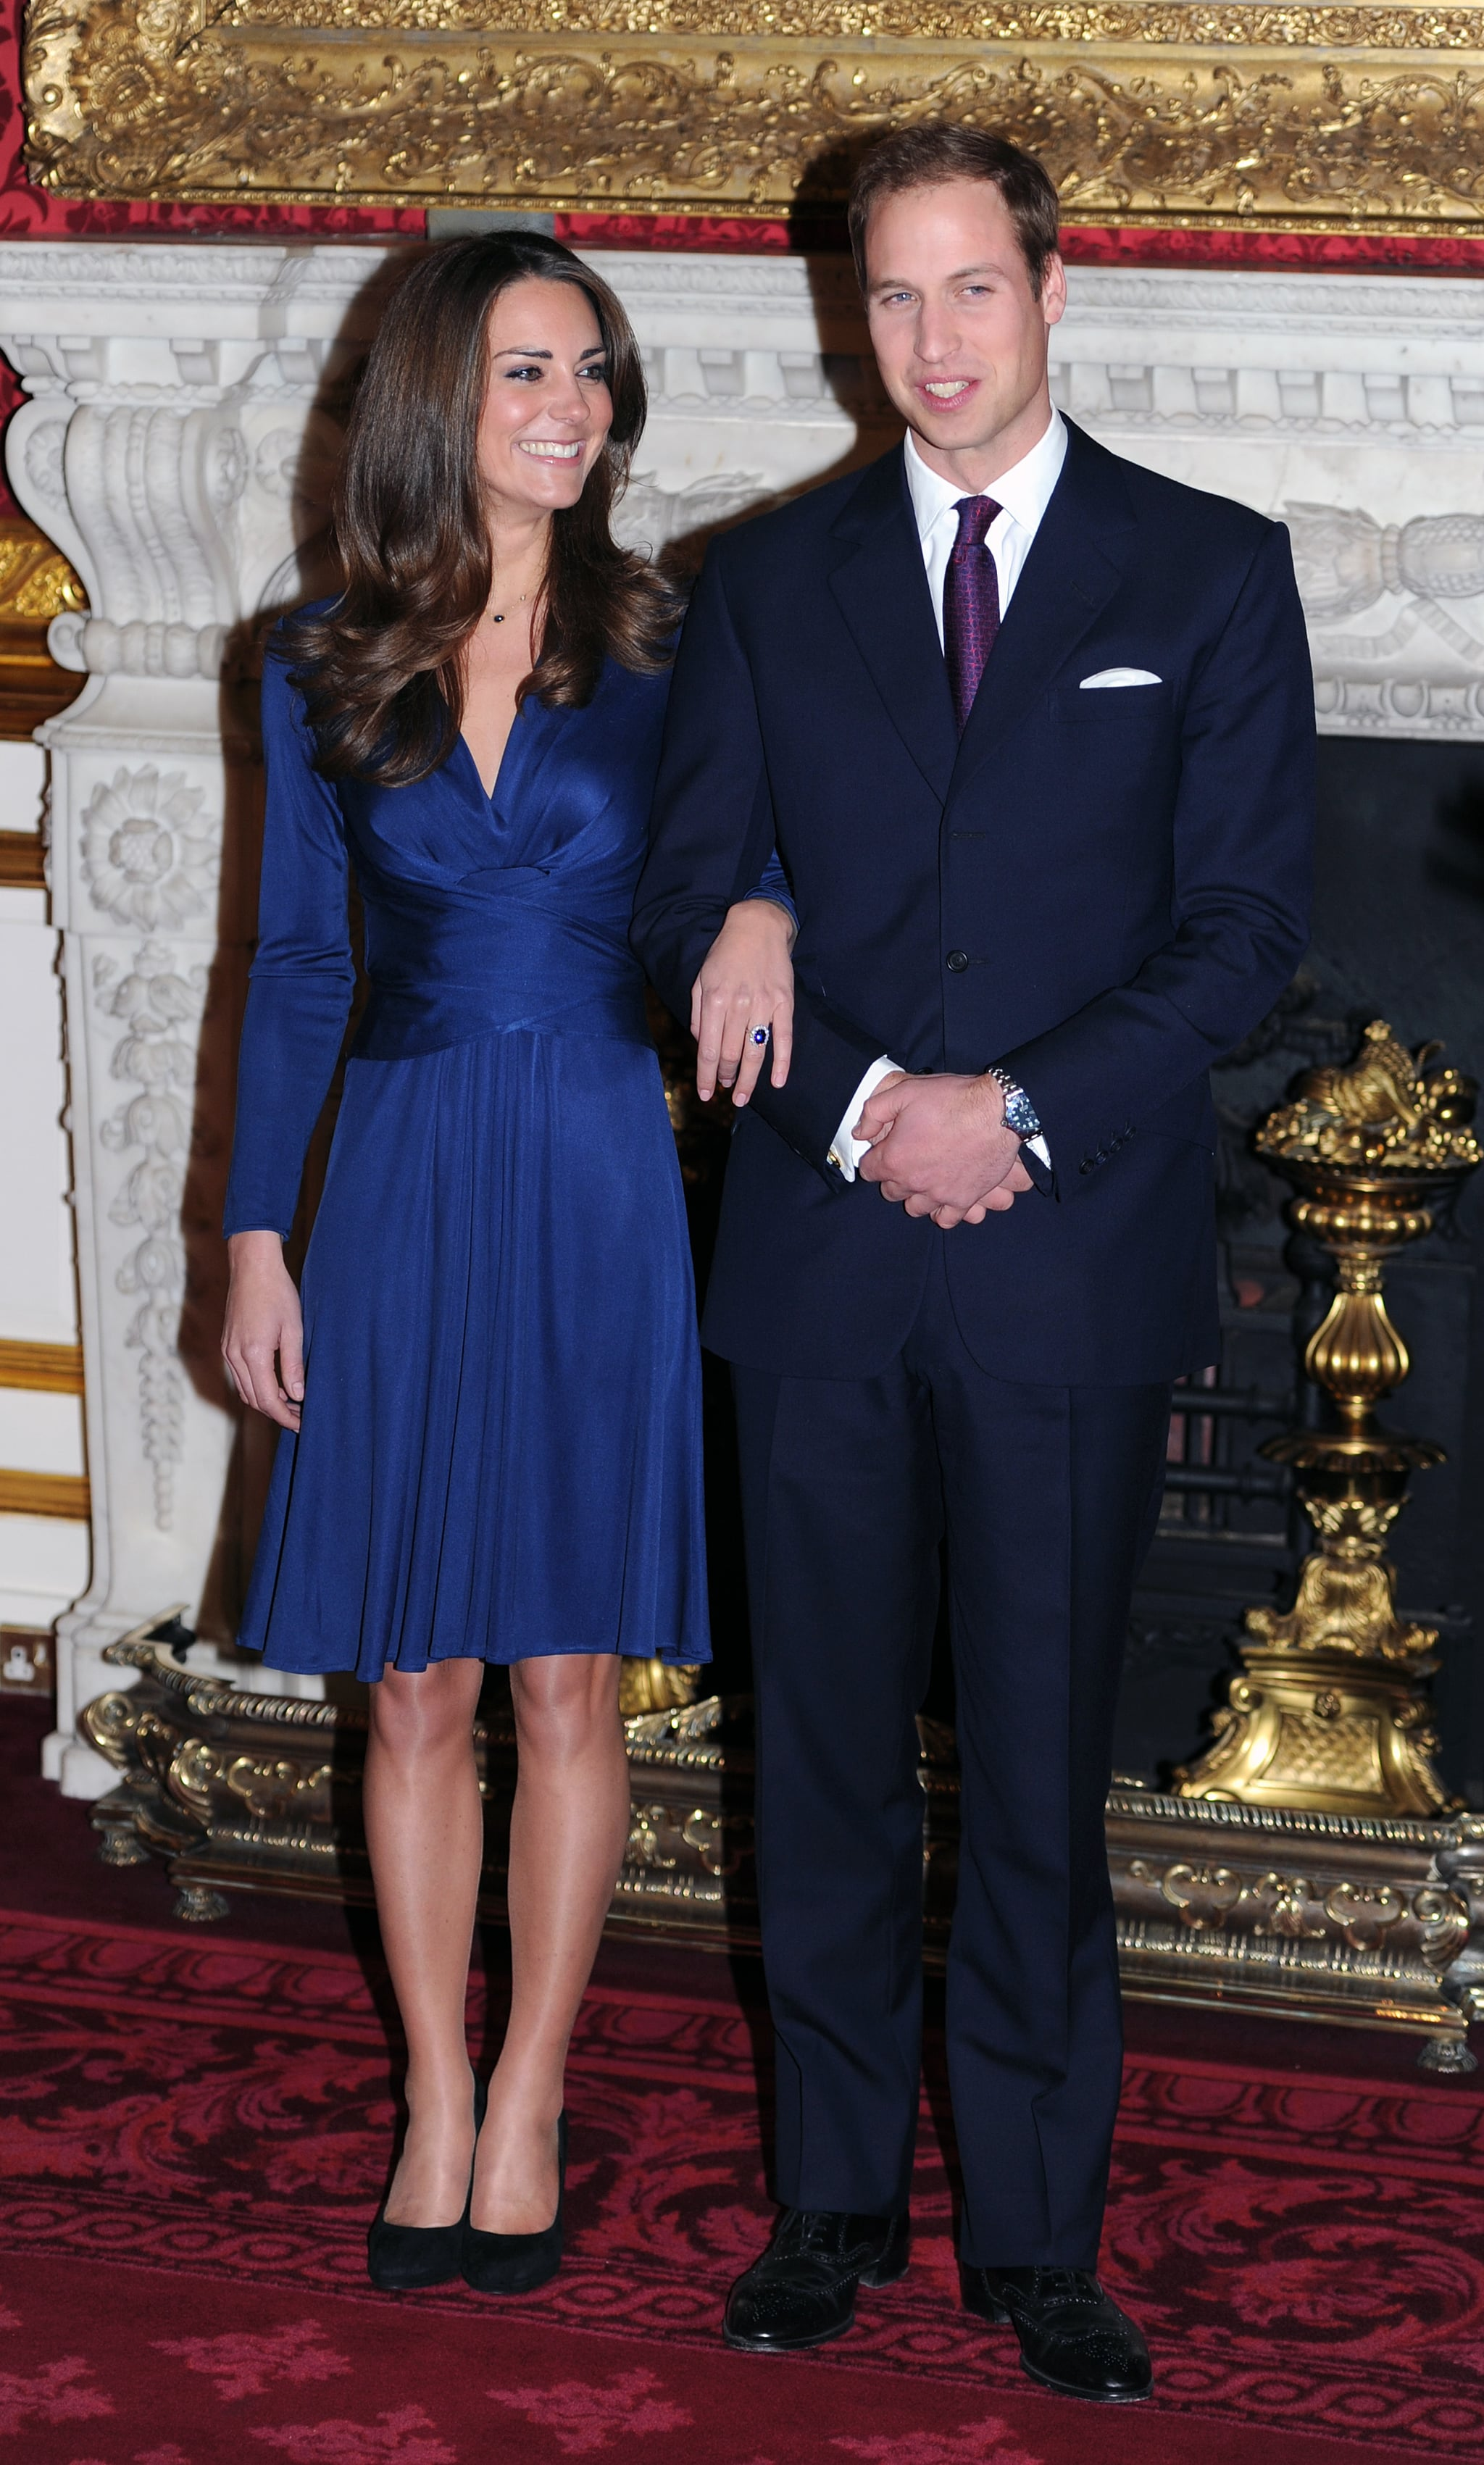 LONDON, ENGLAND - NOVEMBER 16: Prince William and Catherine Middleton pose for photographs in the State Apartments of St James Palace as they announce their engagement on November 16, 2010 in London, England. (Photo by Anwar Hussein/Getty Images)